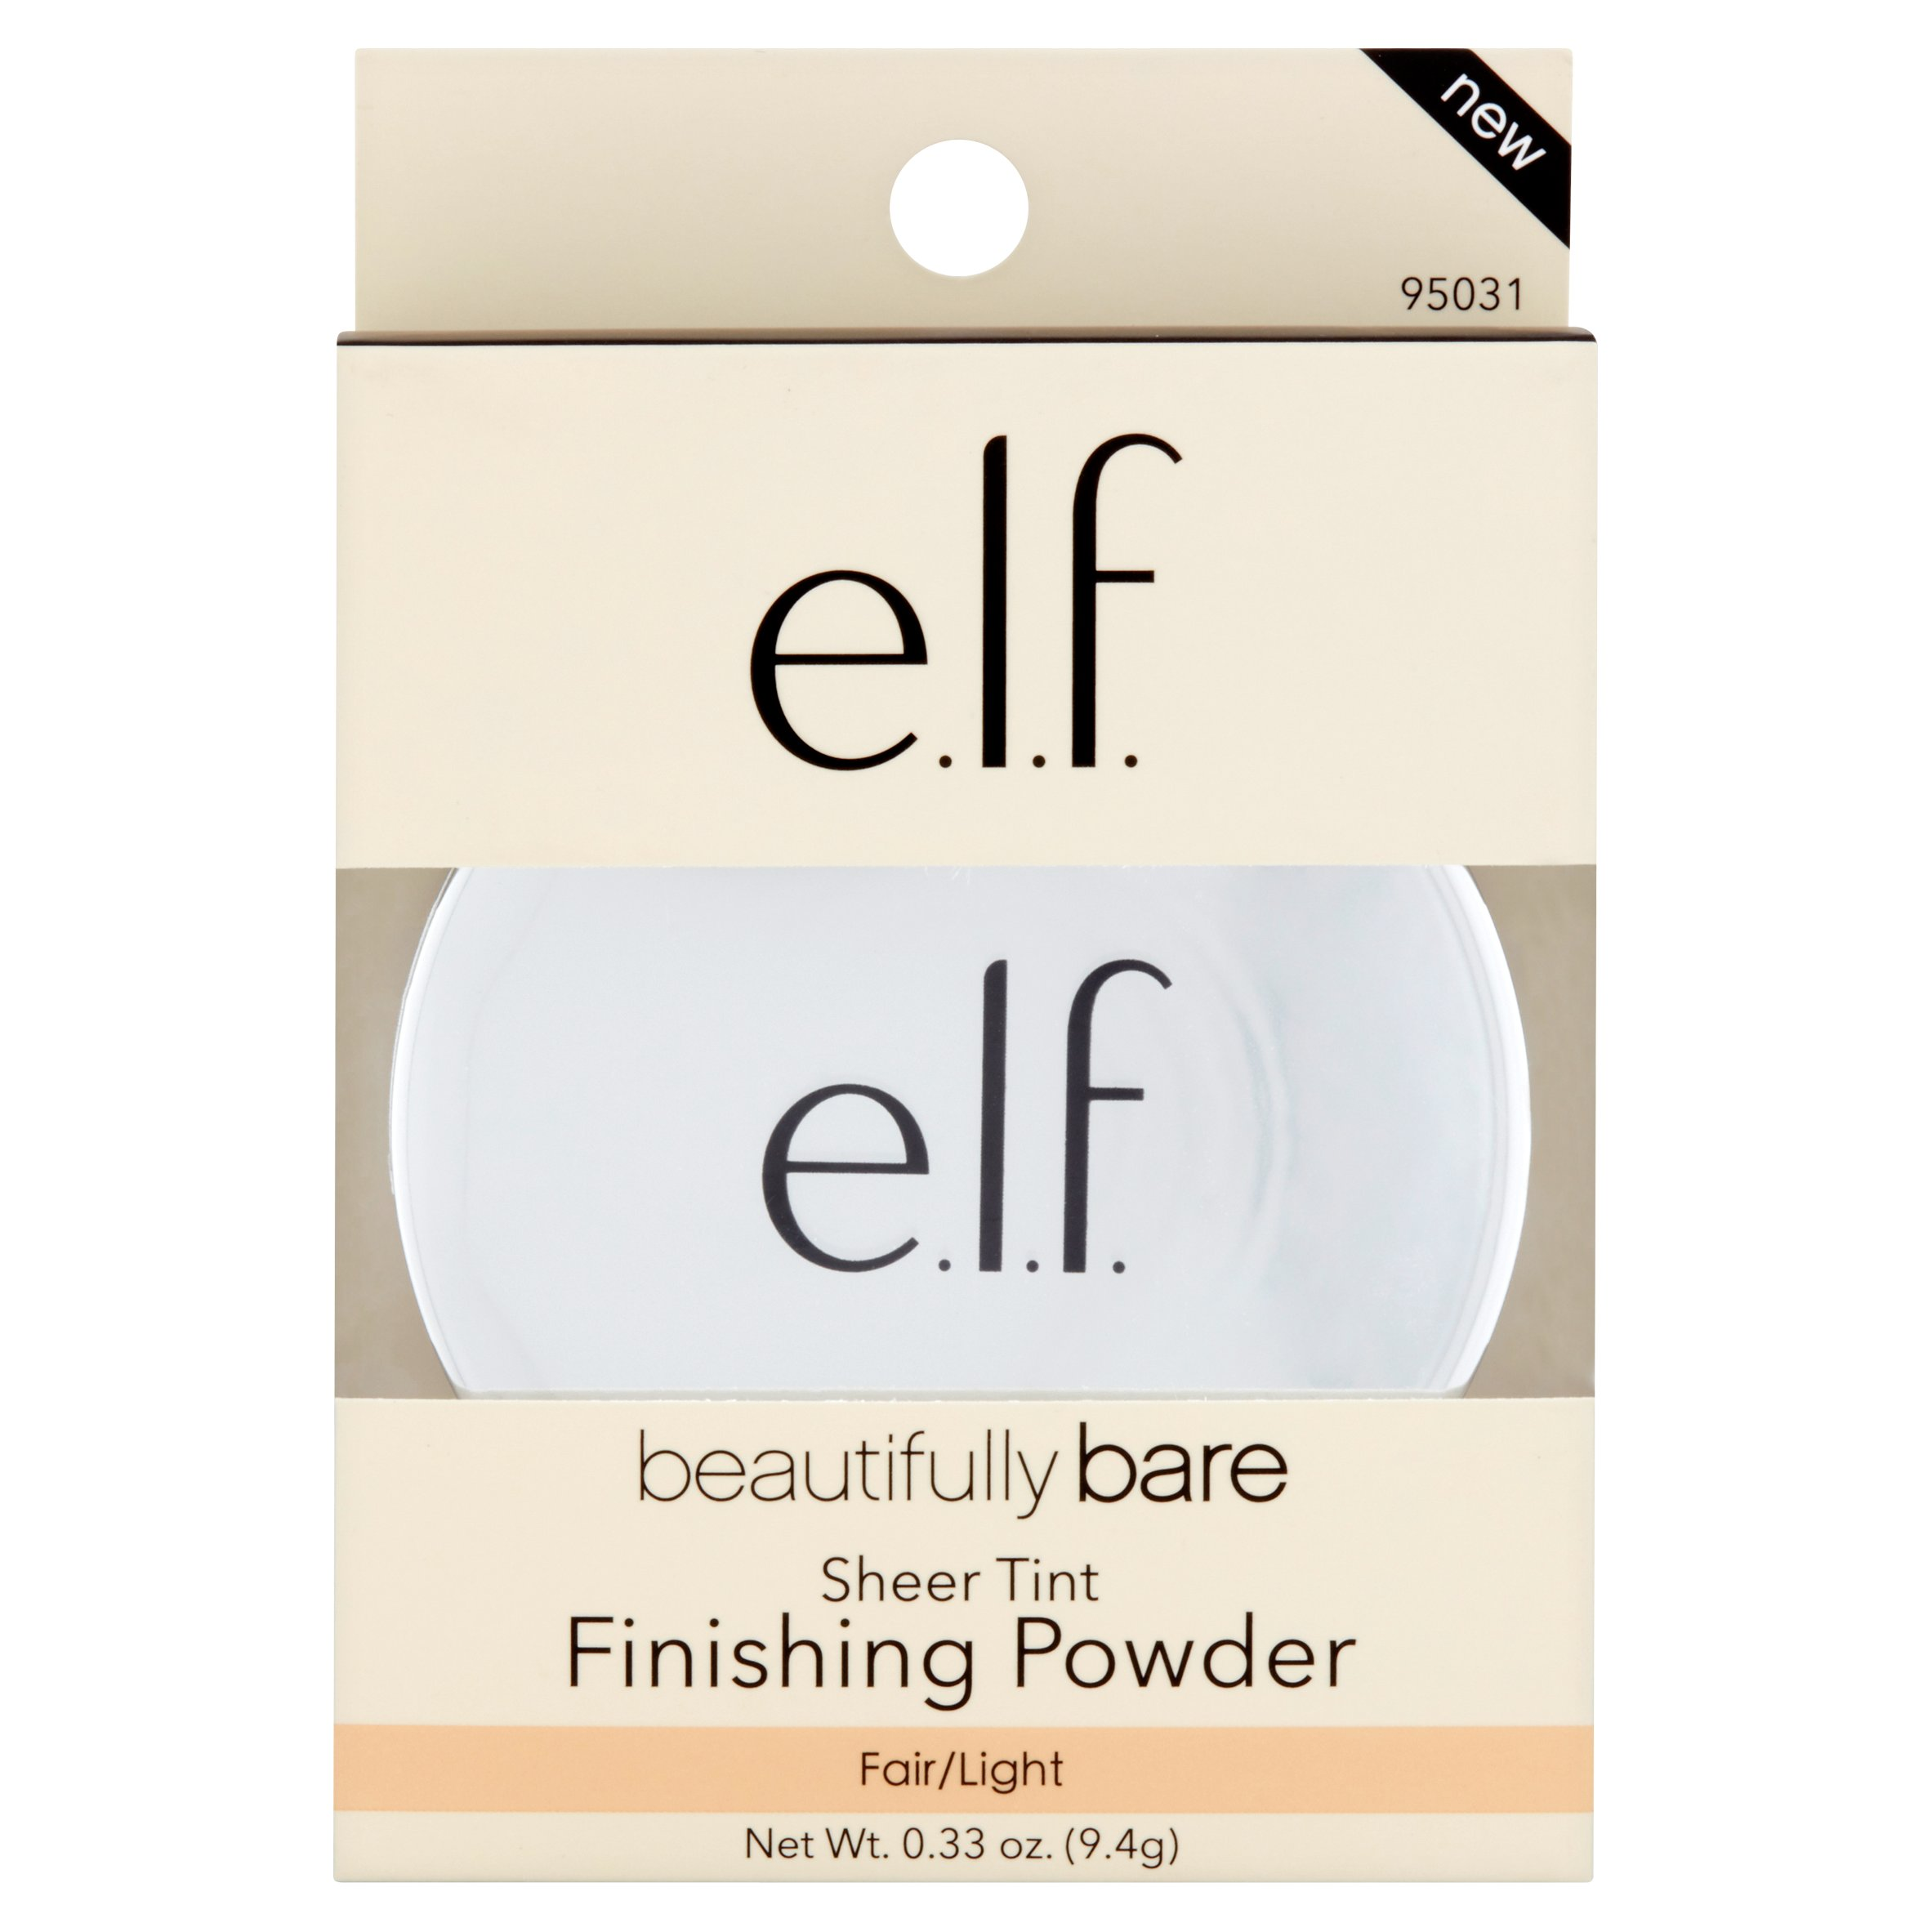 e.l.f. Cosmetics Beautifully Bare Sheer Tint Finishing Powder, Fair/Light